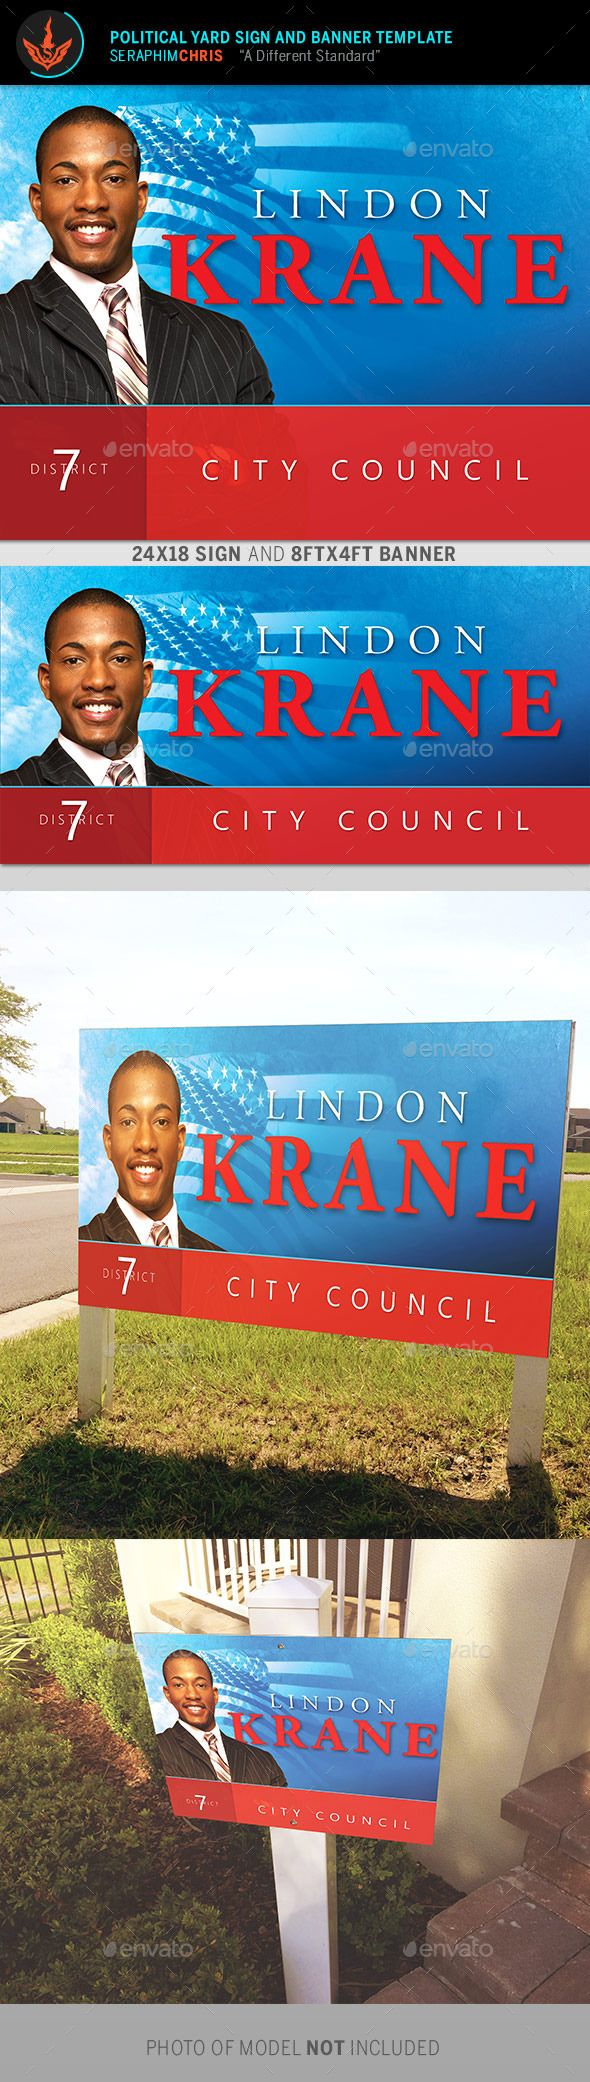 Political Yard Sign and Banner Template 5 - Signage Print Templates